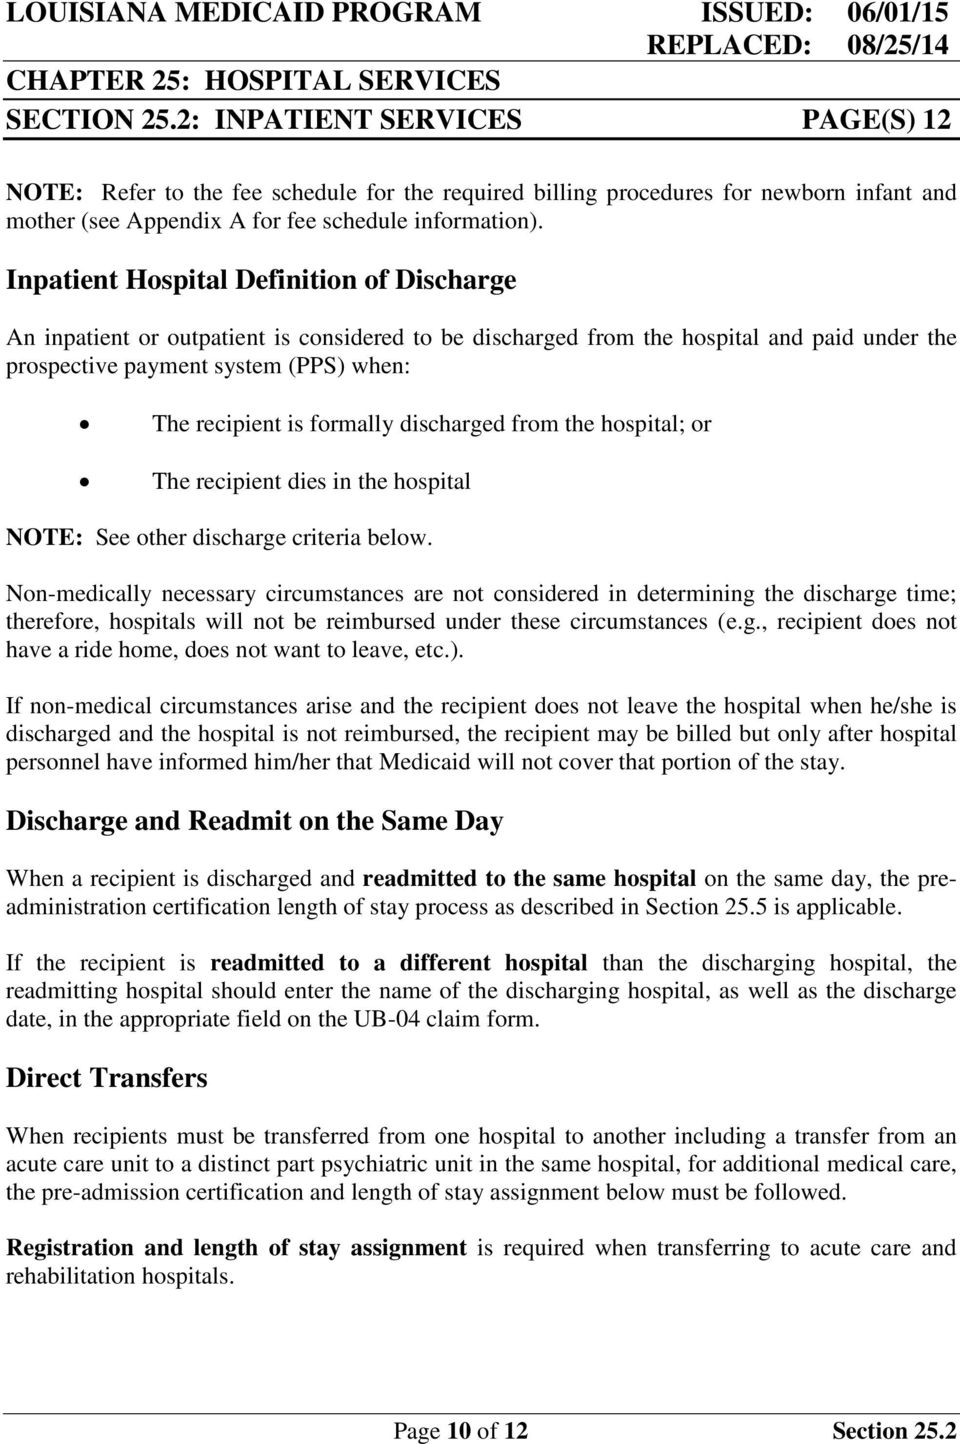 Inpatient Hospital Definition of Discharge An inpatient or outpatient is considered to be discharged from the hospital and paid under the prospective payment system (PPS) when: The recipient is